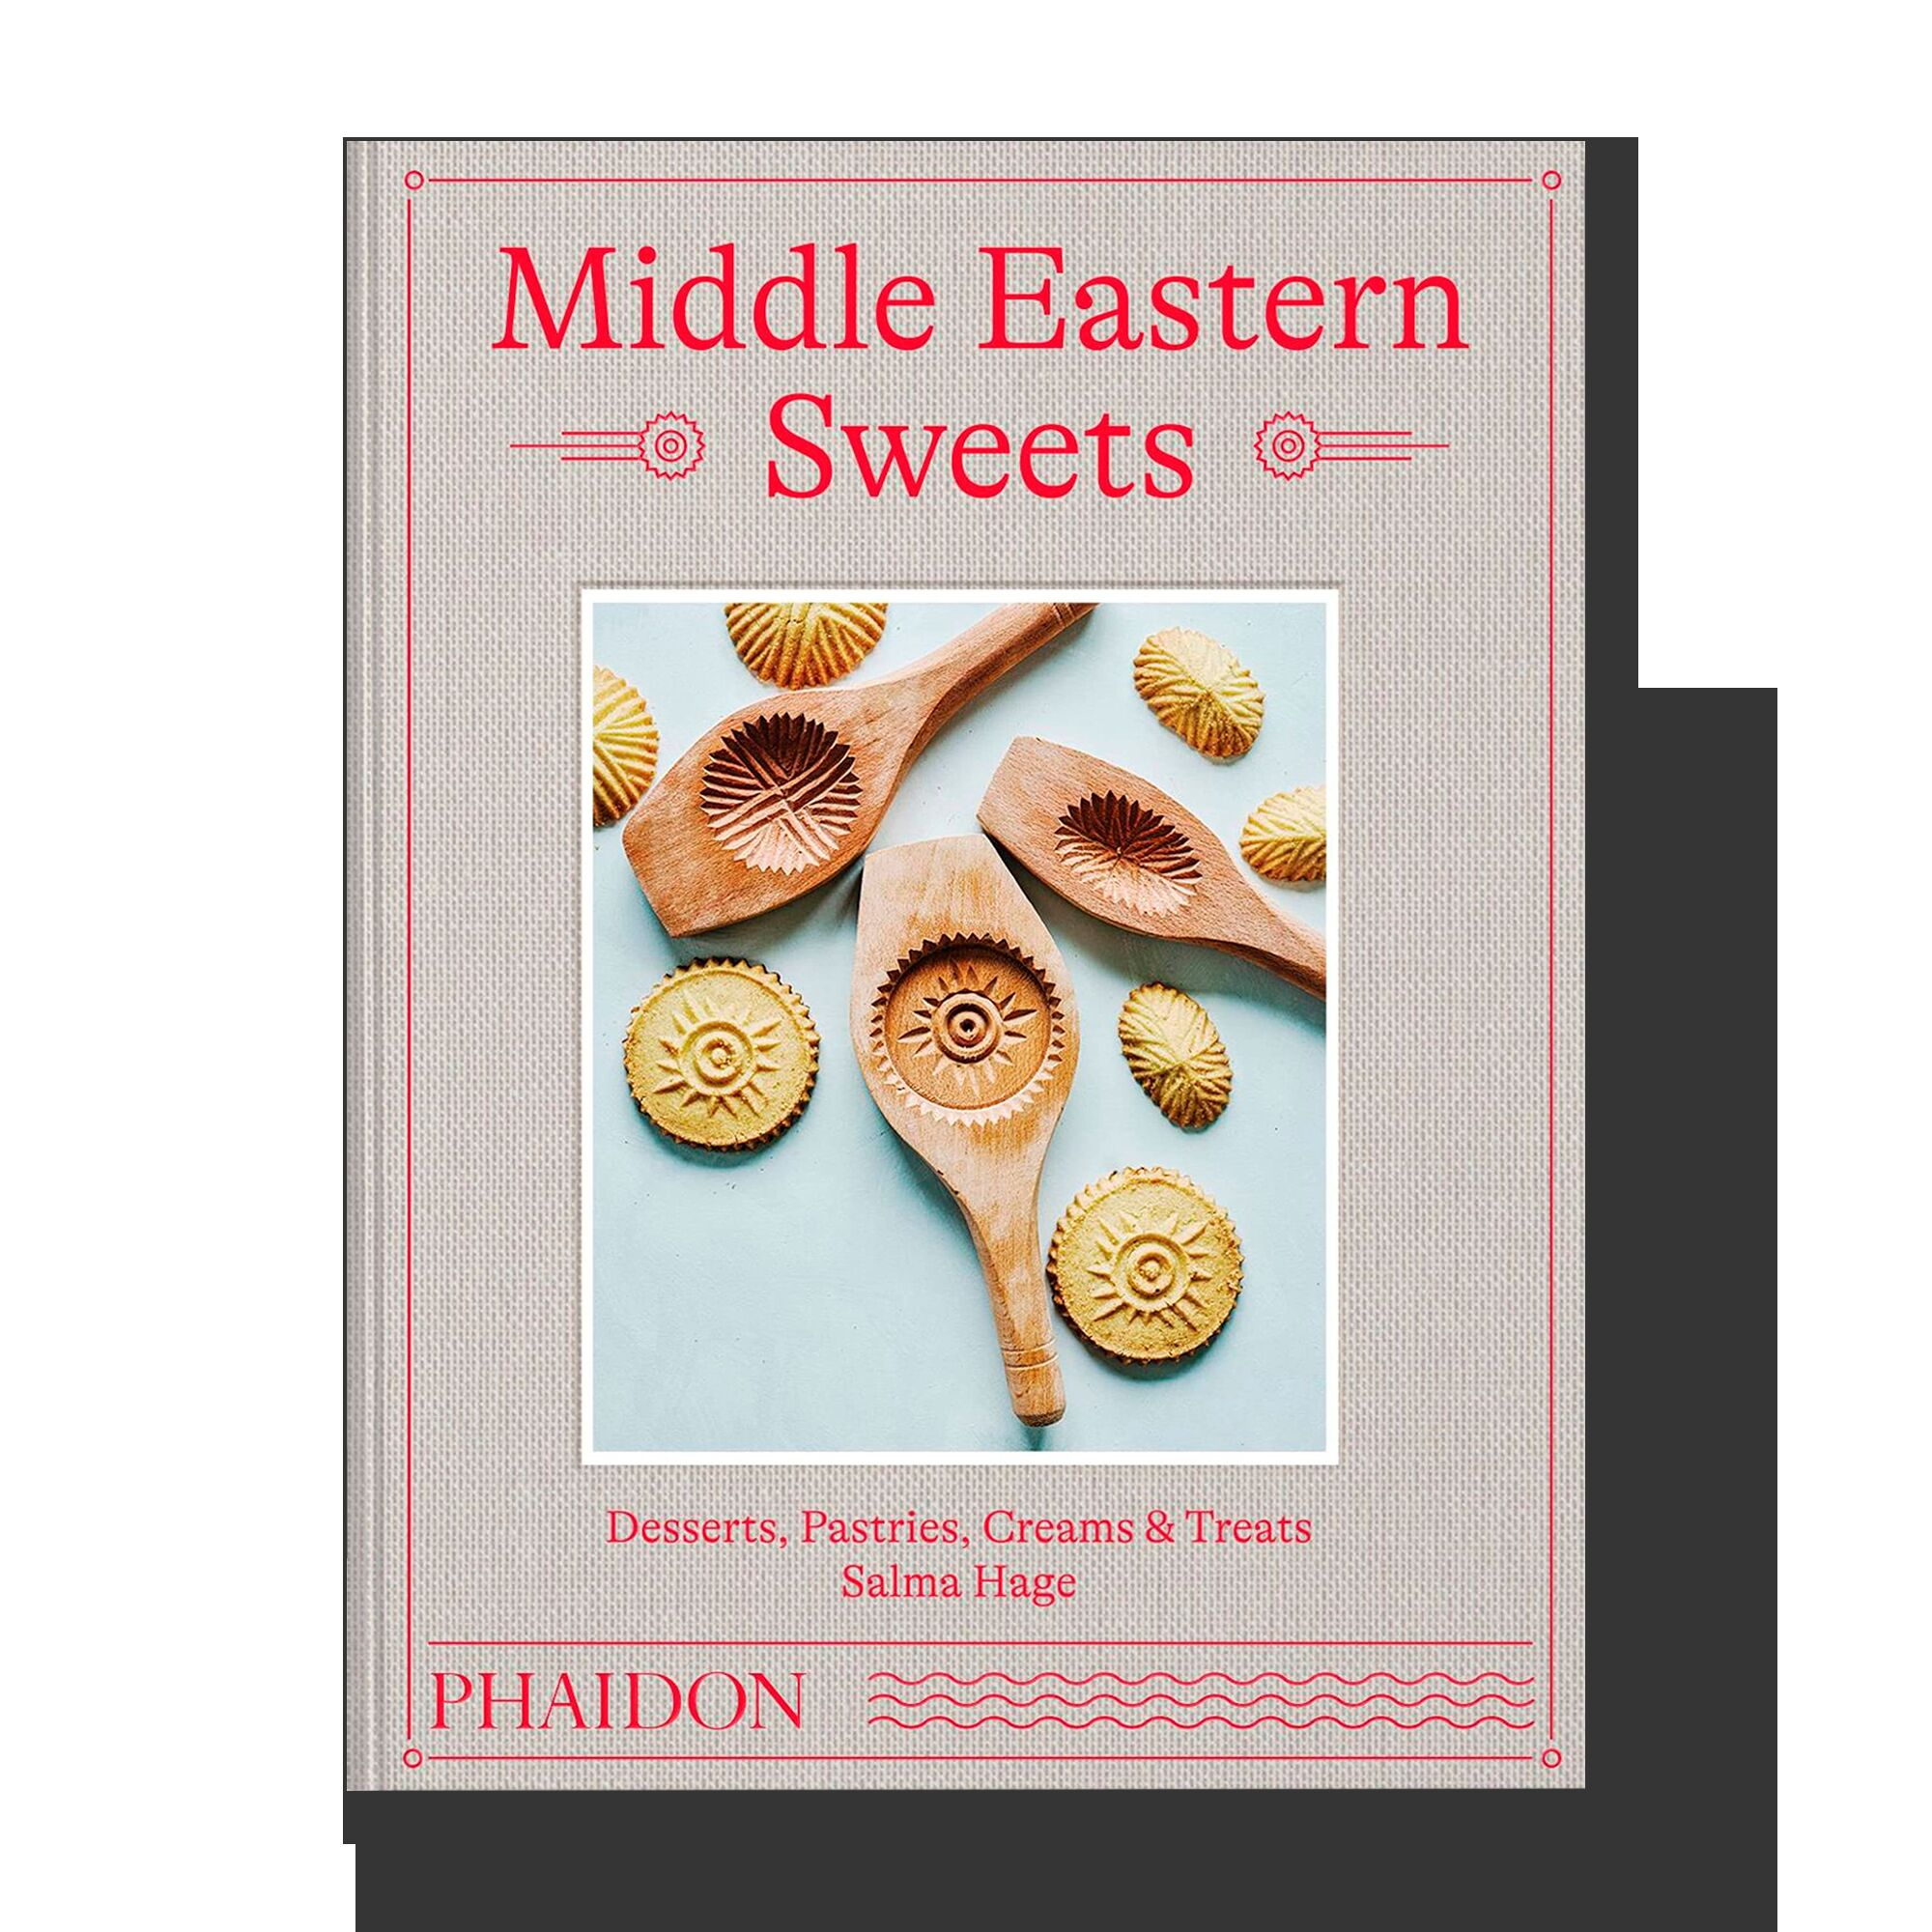 Middle Eastern Sweets